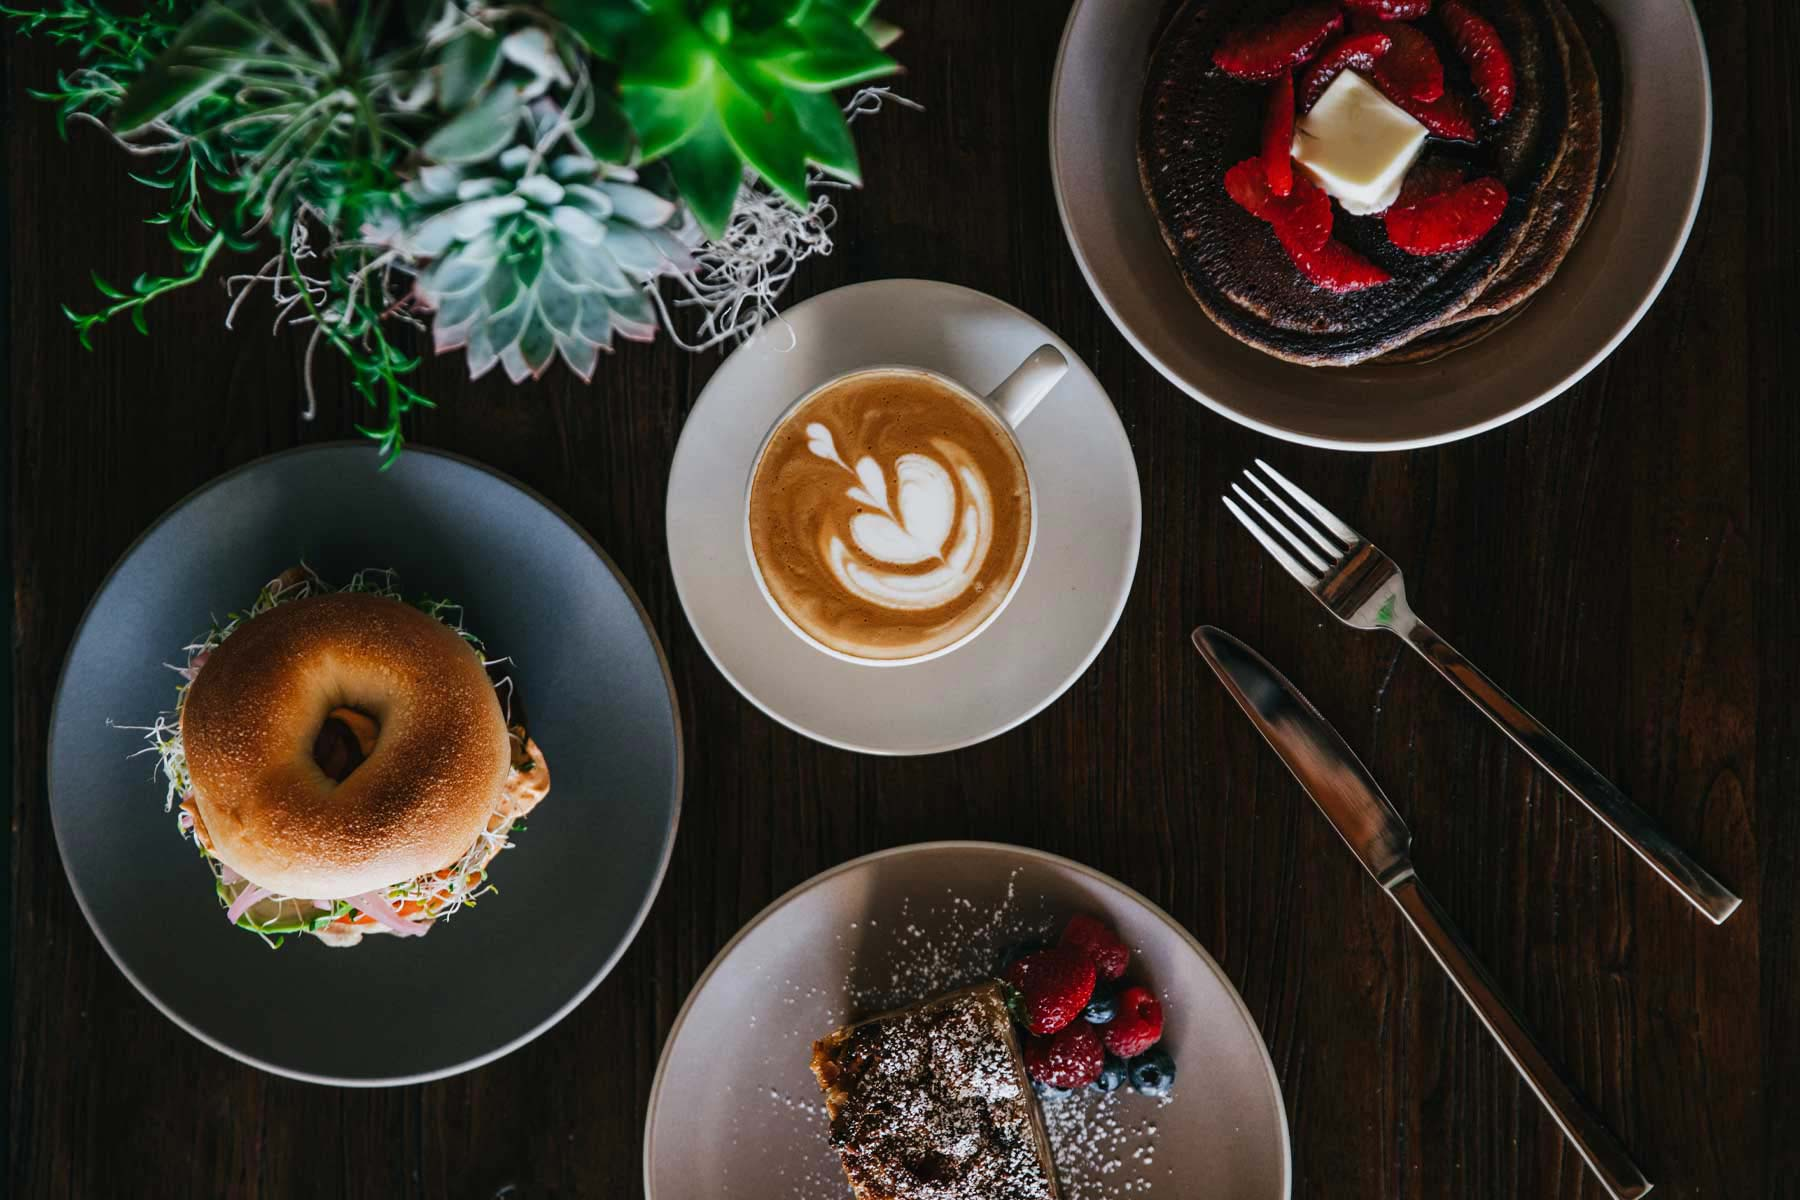 cappuccino, breakfast bagel, buttermilk pancakes topped with berries for brunch